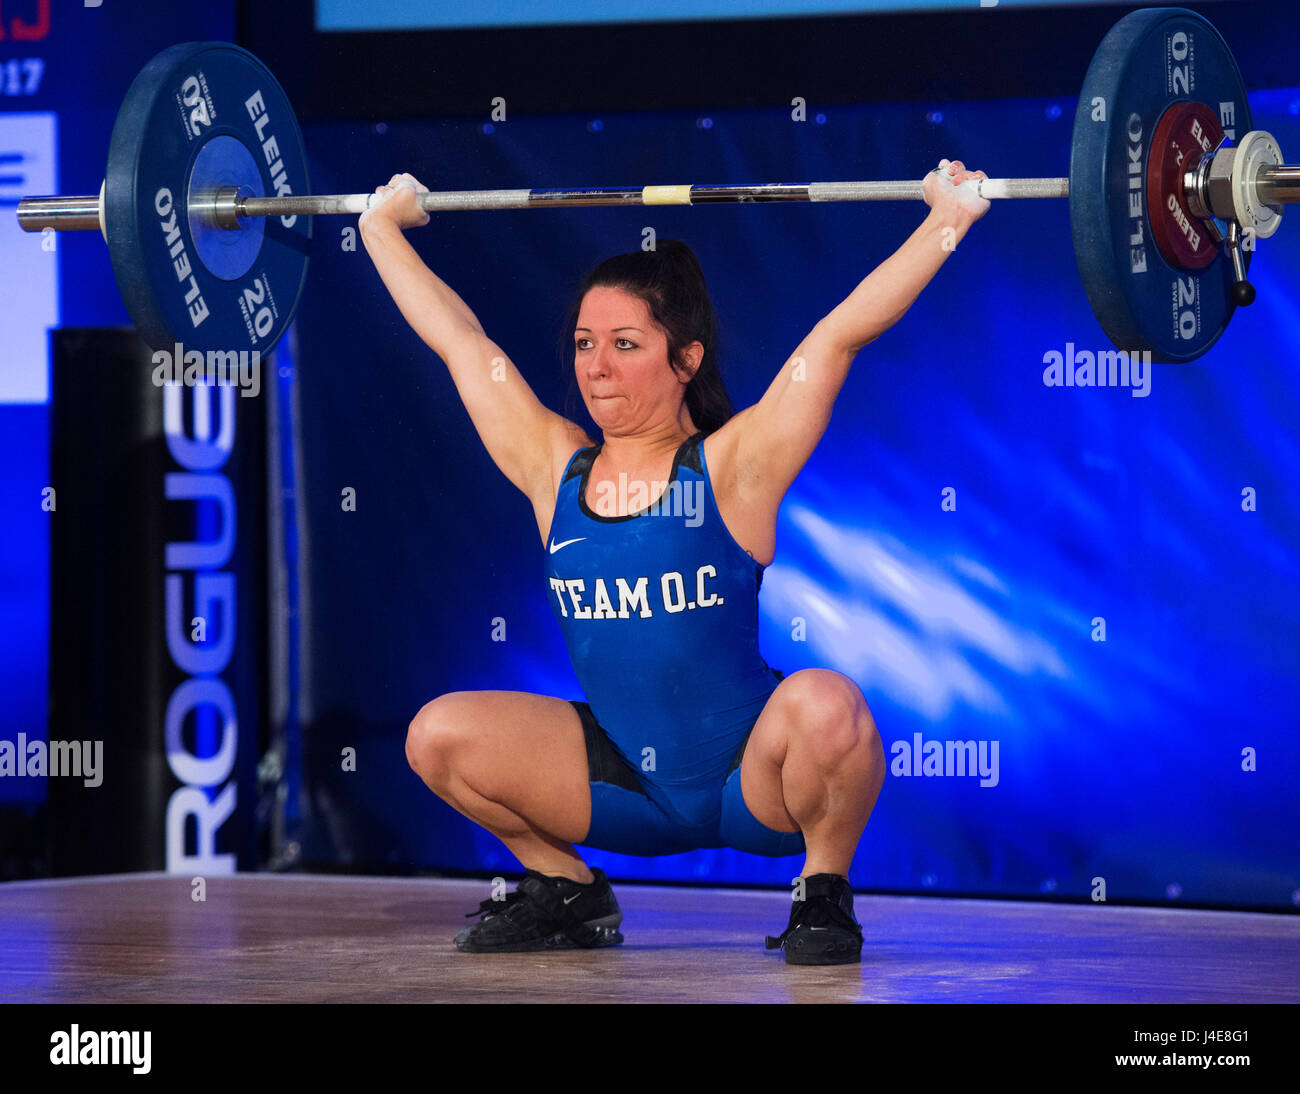 May 12, 2017: Brittany Witt competes in the Womens 48kg. class at the USA Weightlifting National Championships in - Stock Image